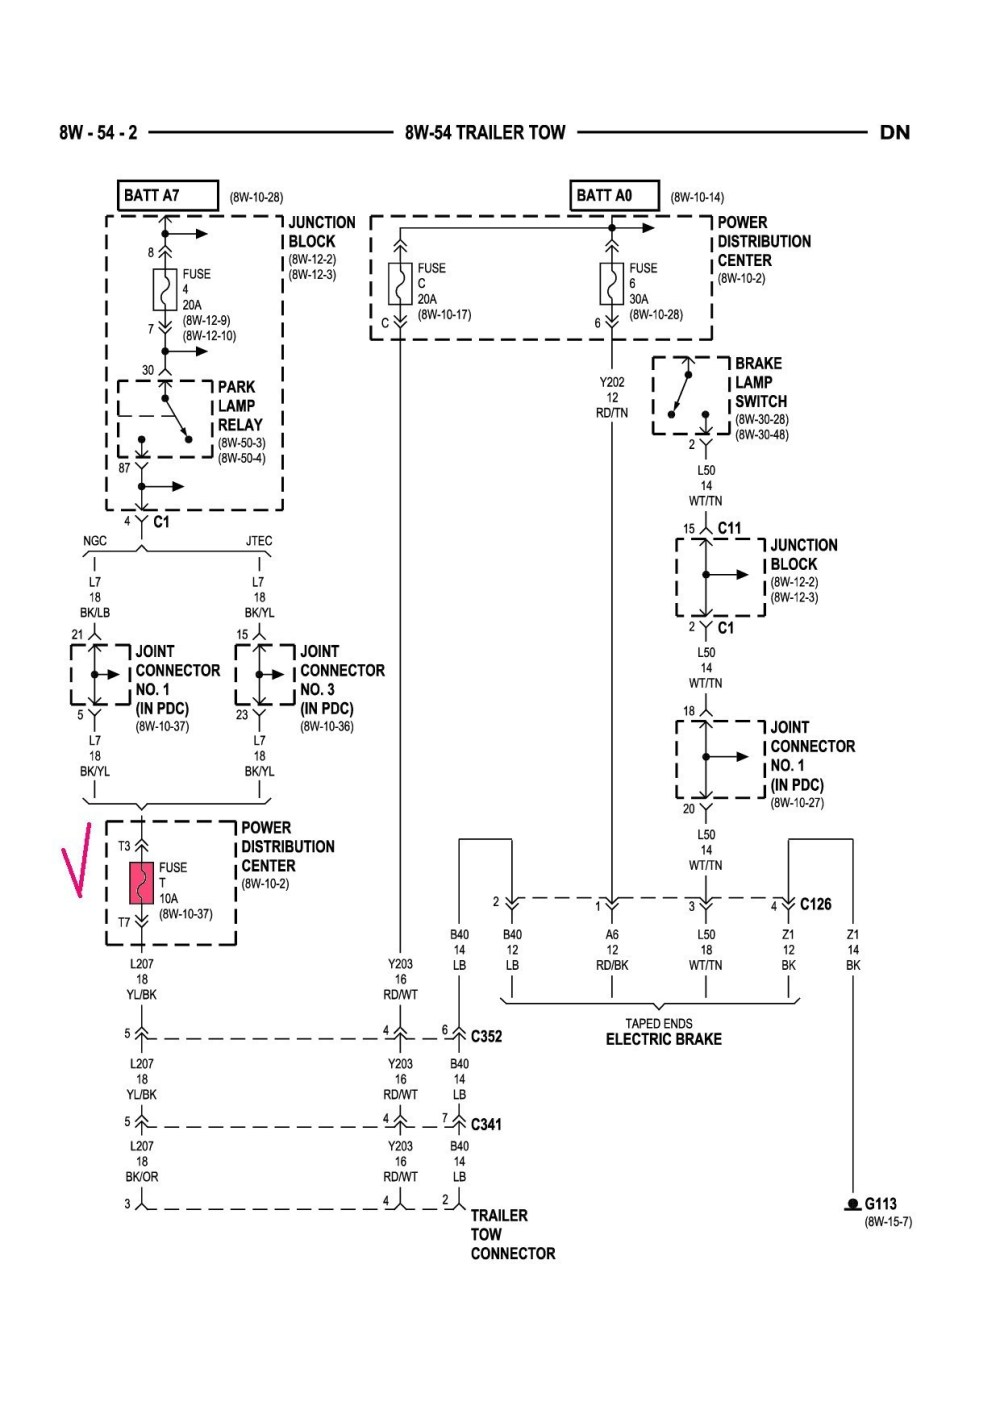 medium resolution of 2003 dodge ram trailer wiring schema diagram database 2003 dodge grand caravan trailer wiring